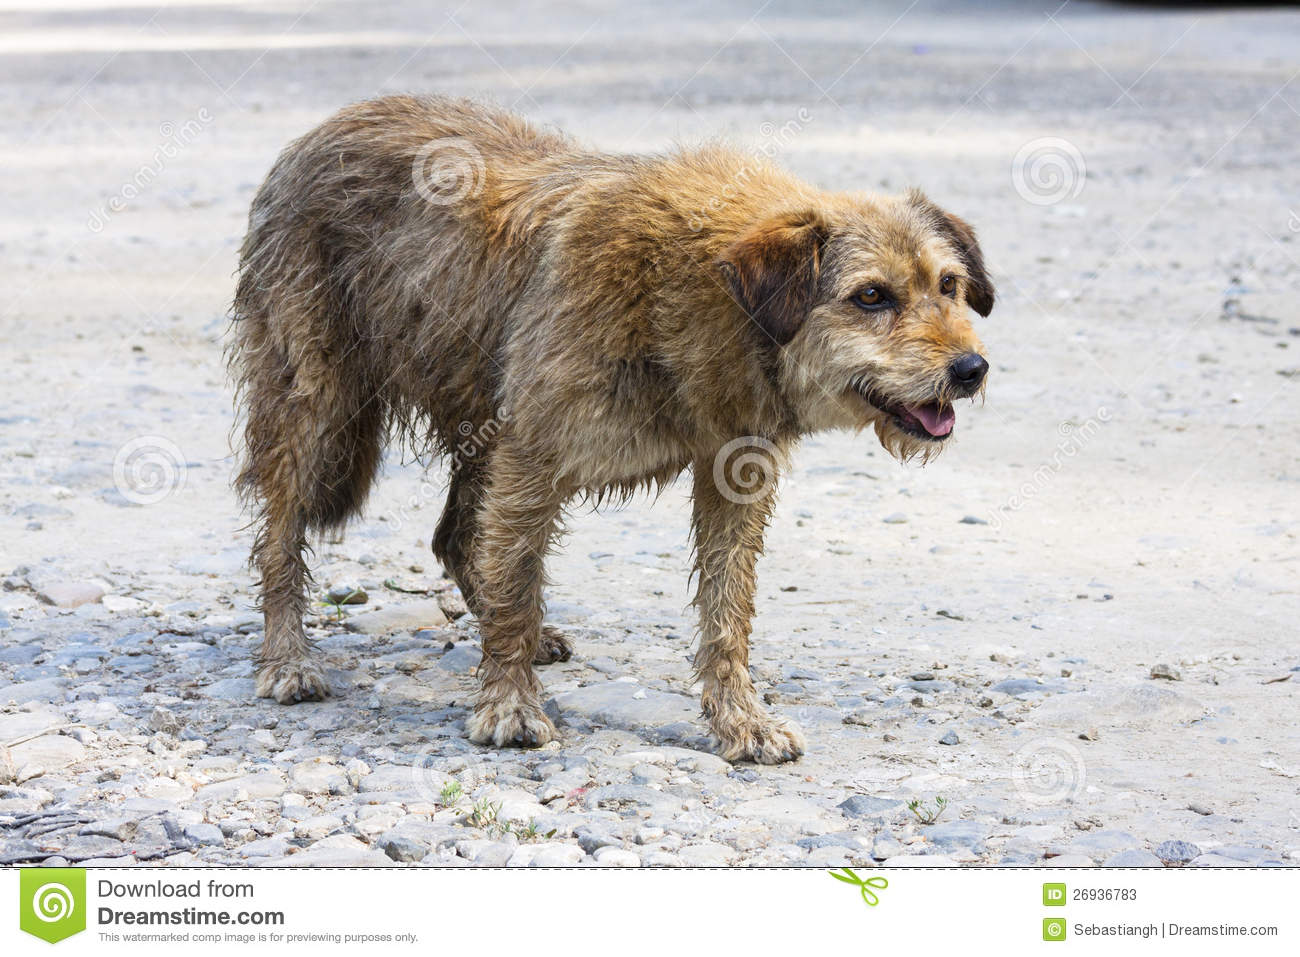 Abandoned Dog Stock Photos - Image: 26936783